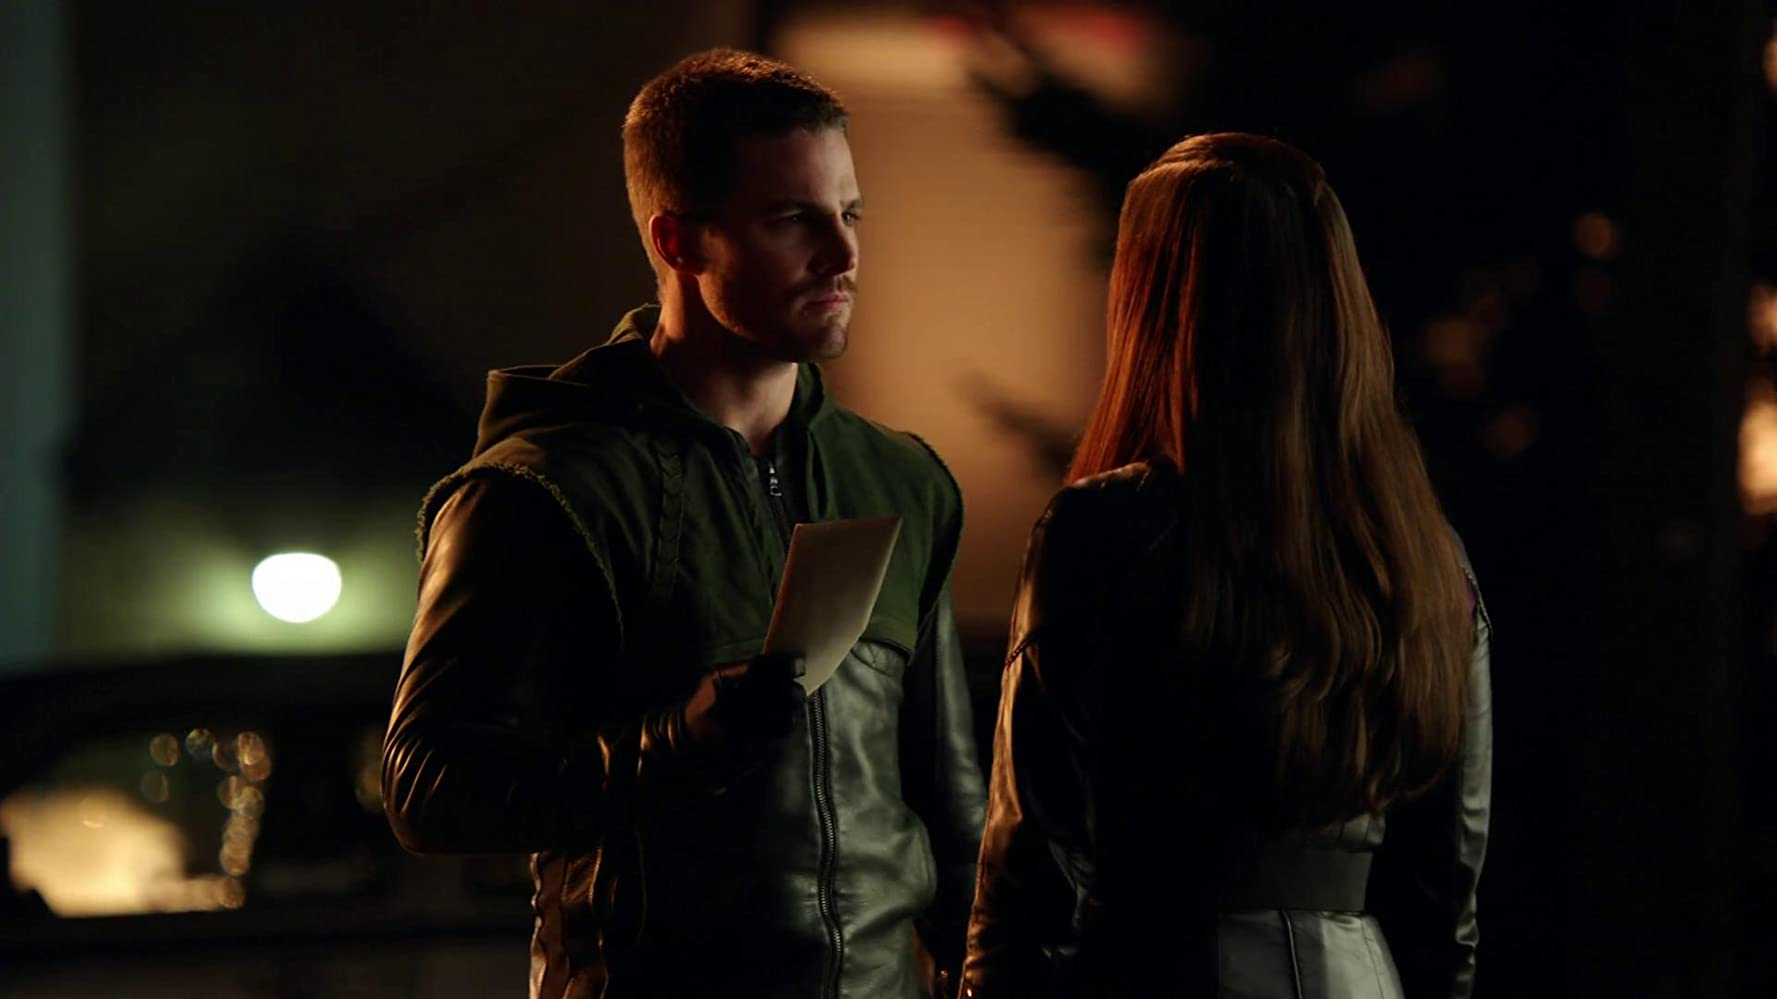 Stephen Amell and Jessica De Gouw in Arrow (2012)